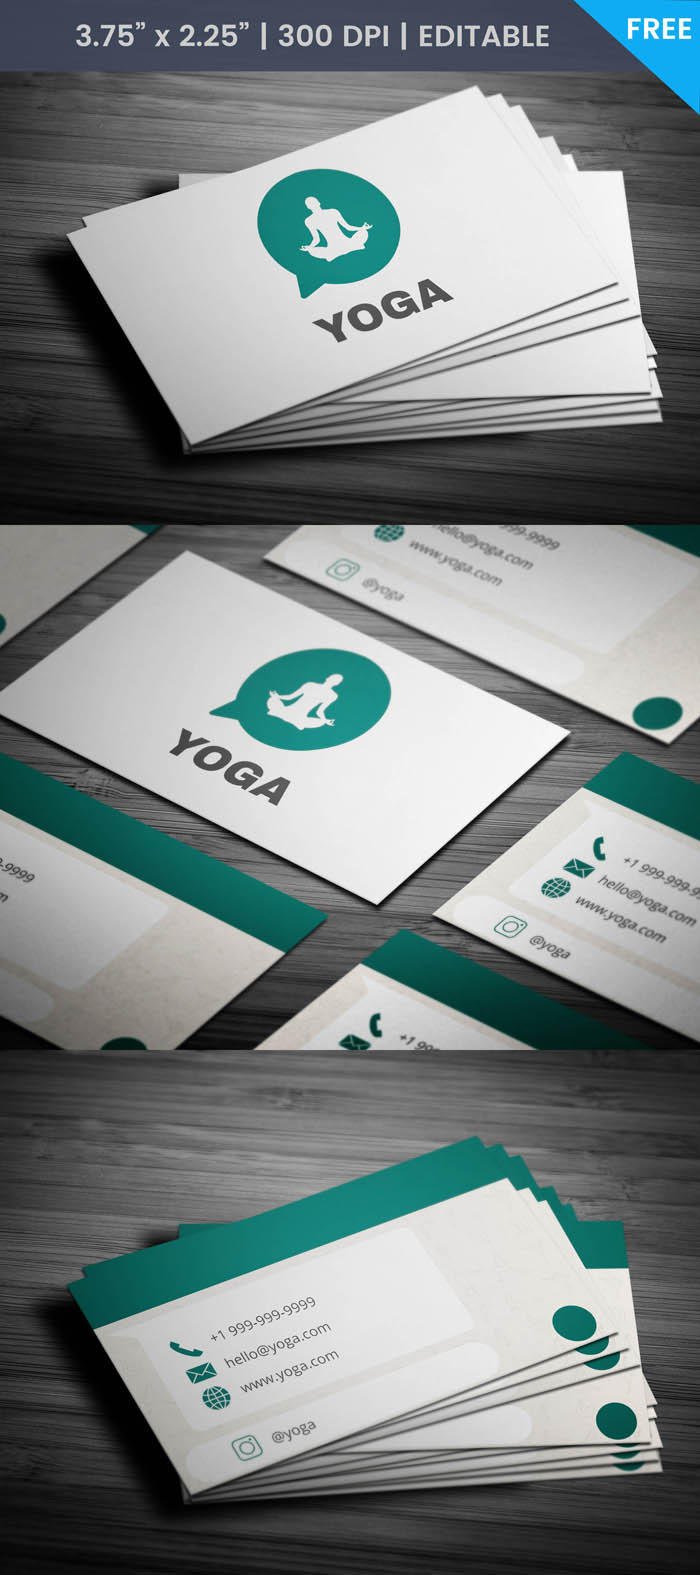 Free Whatsapp Themed Yoga Business Card Template